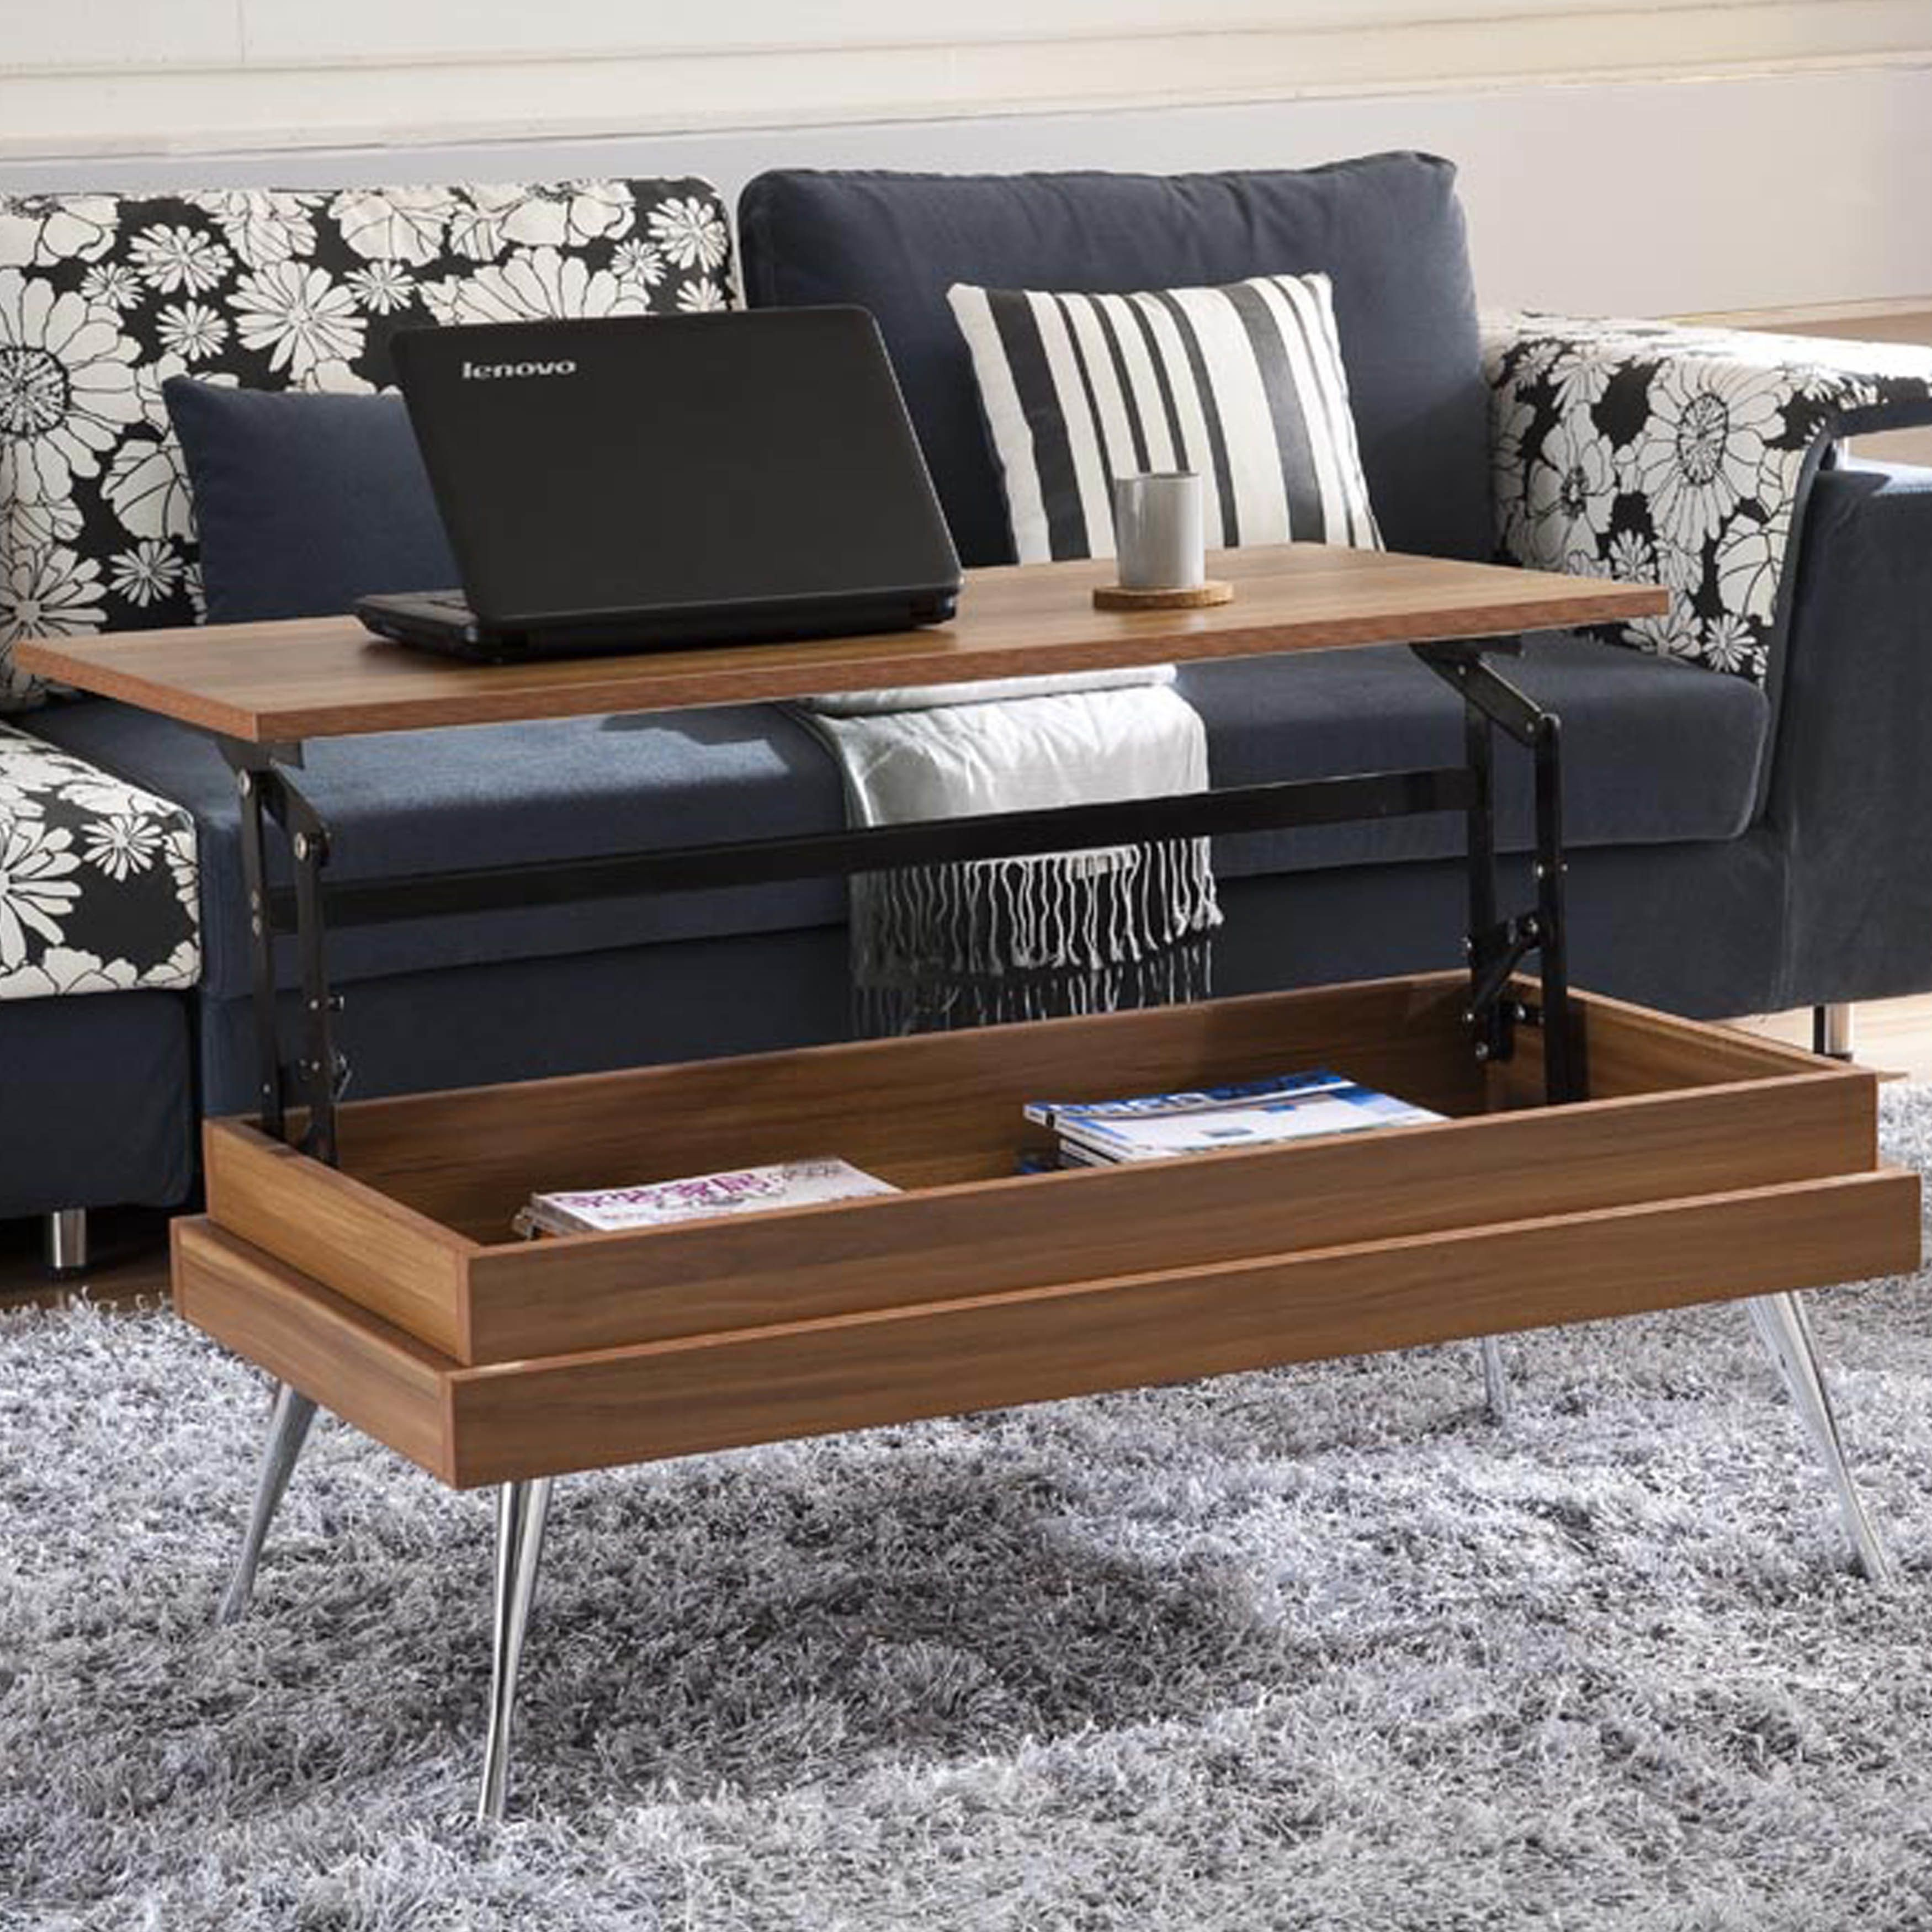 Customer Image Zoomed Coffee Table Coffee Table Desk Contemporary Coffee Table [ 3500 x 3500 Pixel ]